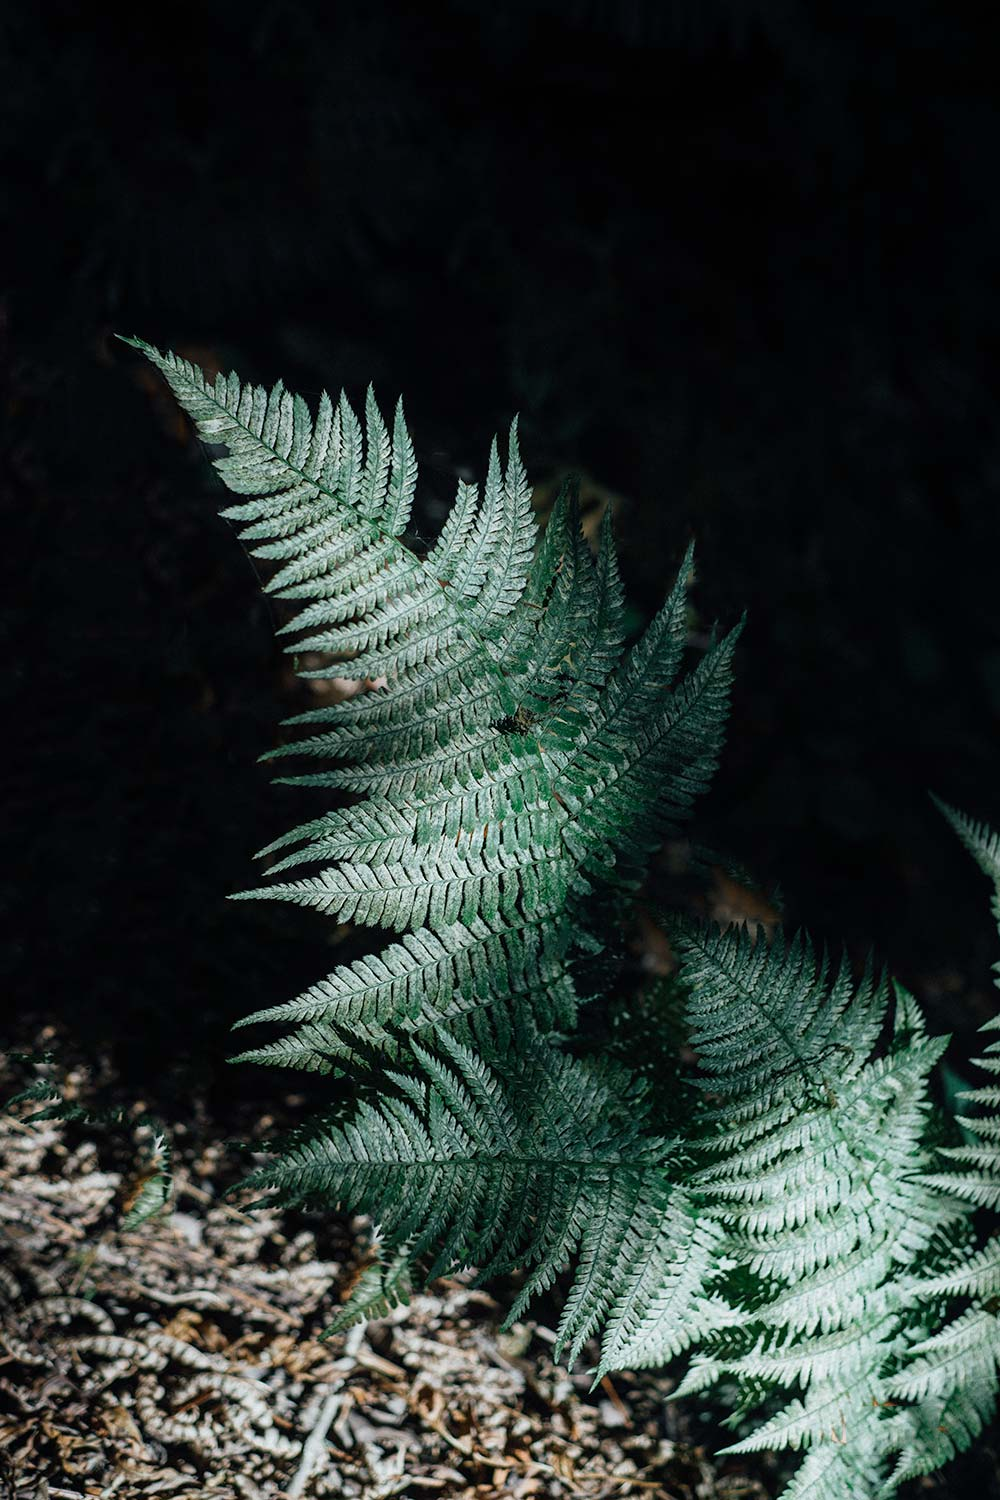 Fern on black background